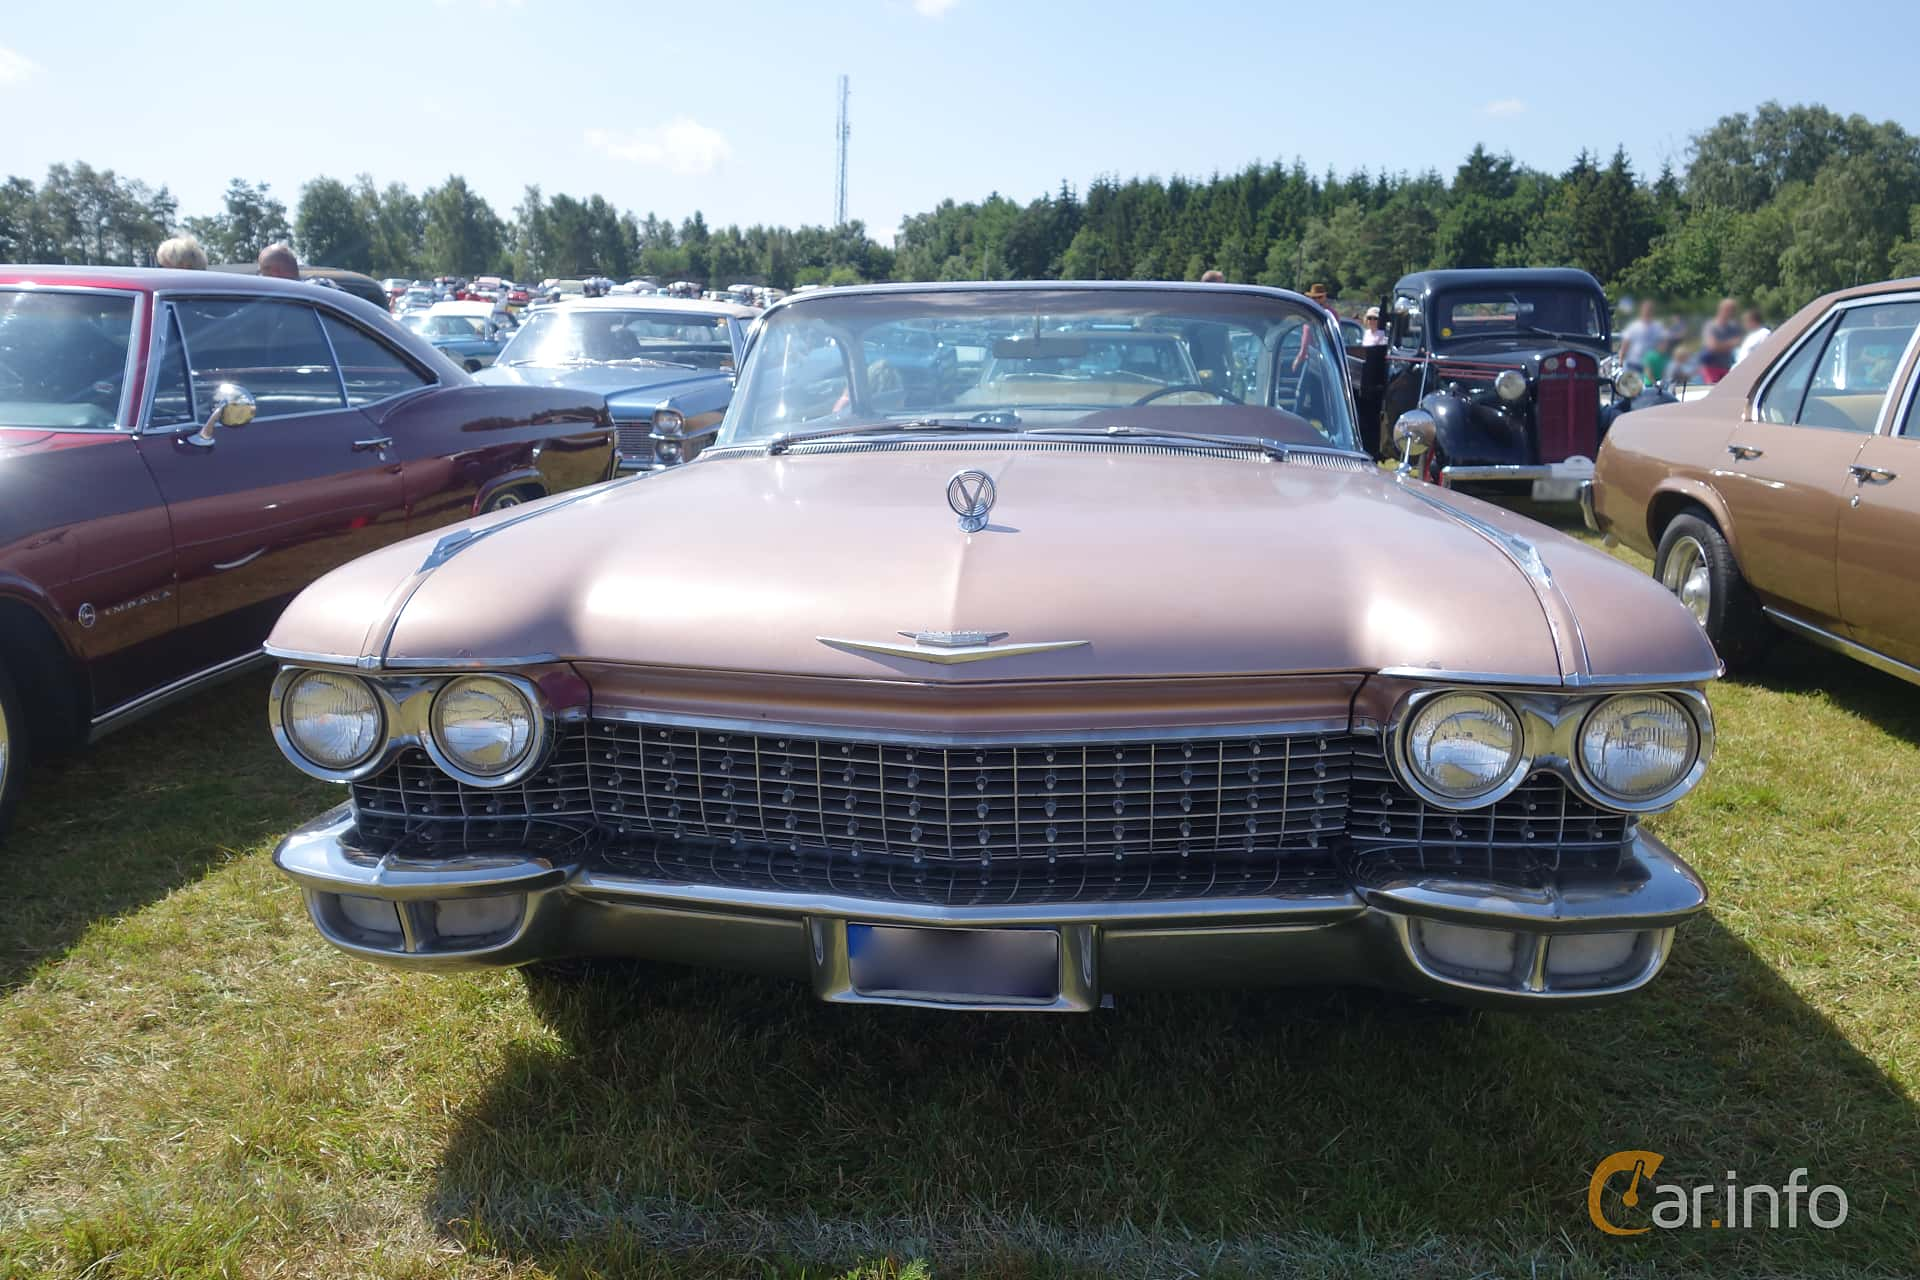 Cadillac Coupé de Ville 6.4 V8 OHV Hydra-Matic, 349hp, 1960 at Wheels & Wings 2015